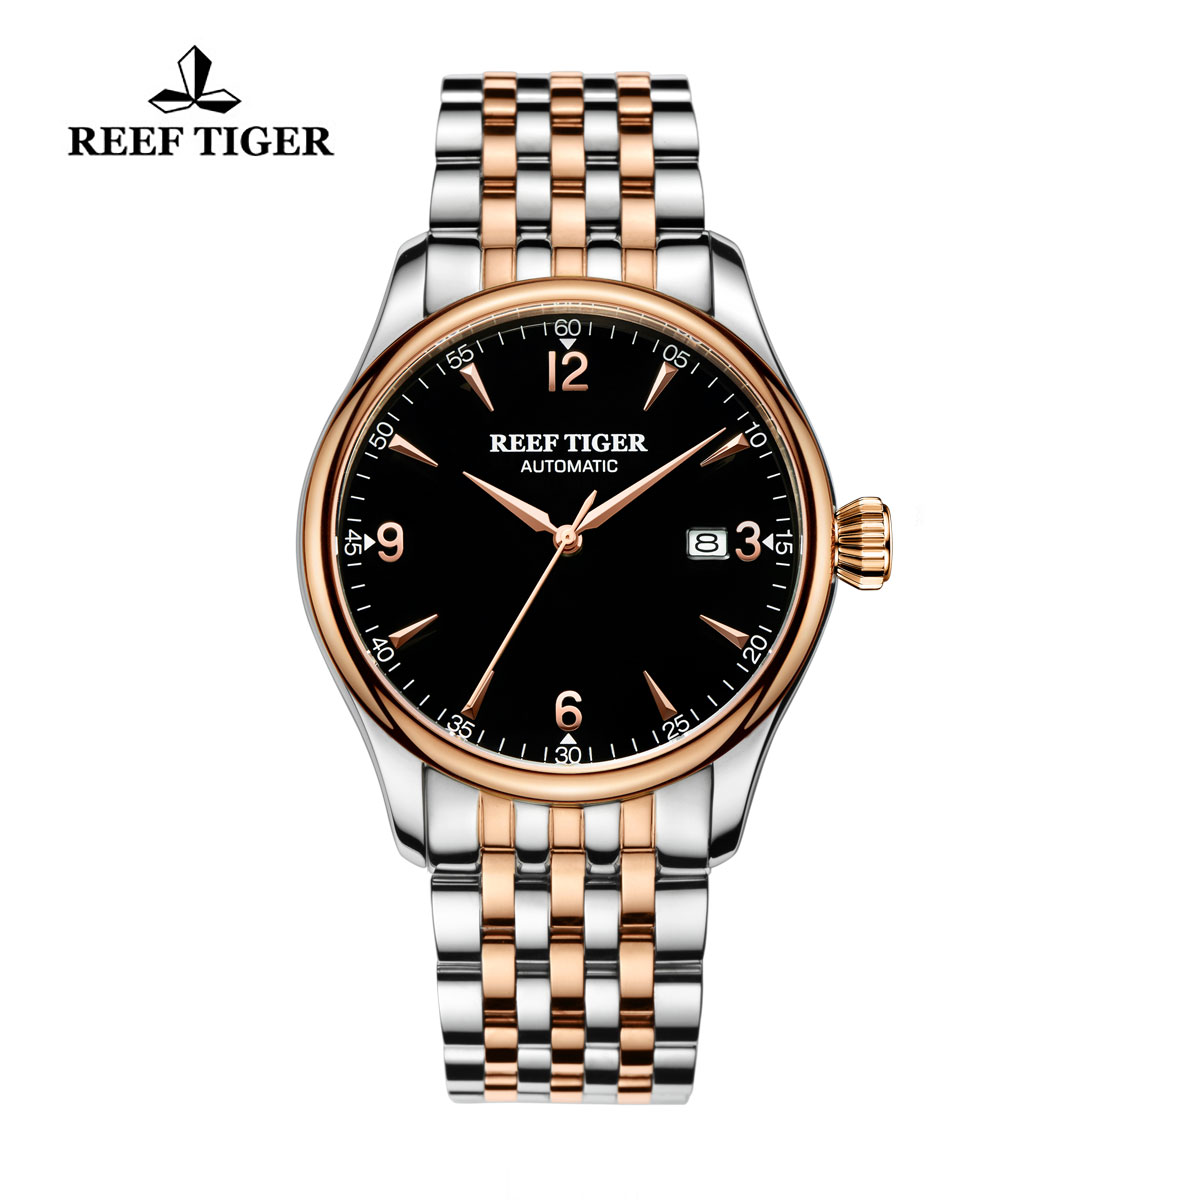 Reef Tiger Heritage Dress Automatic Watch Black Dial Two Tone Case RGA823G-PBT